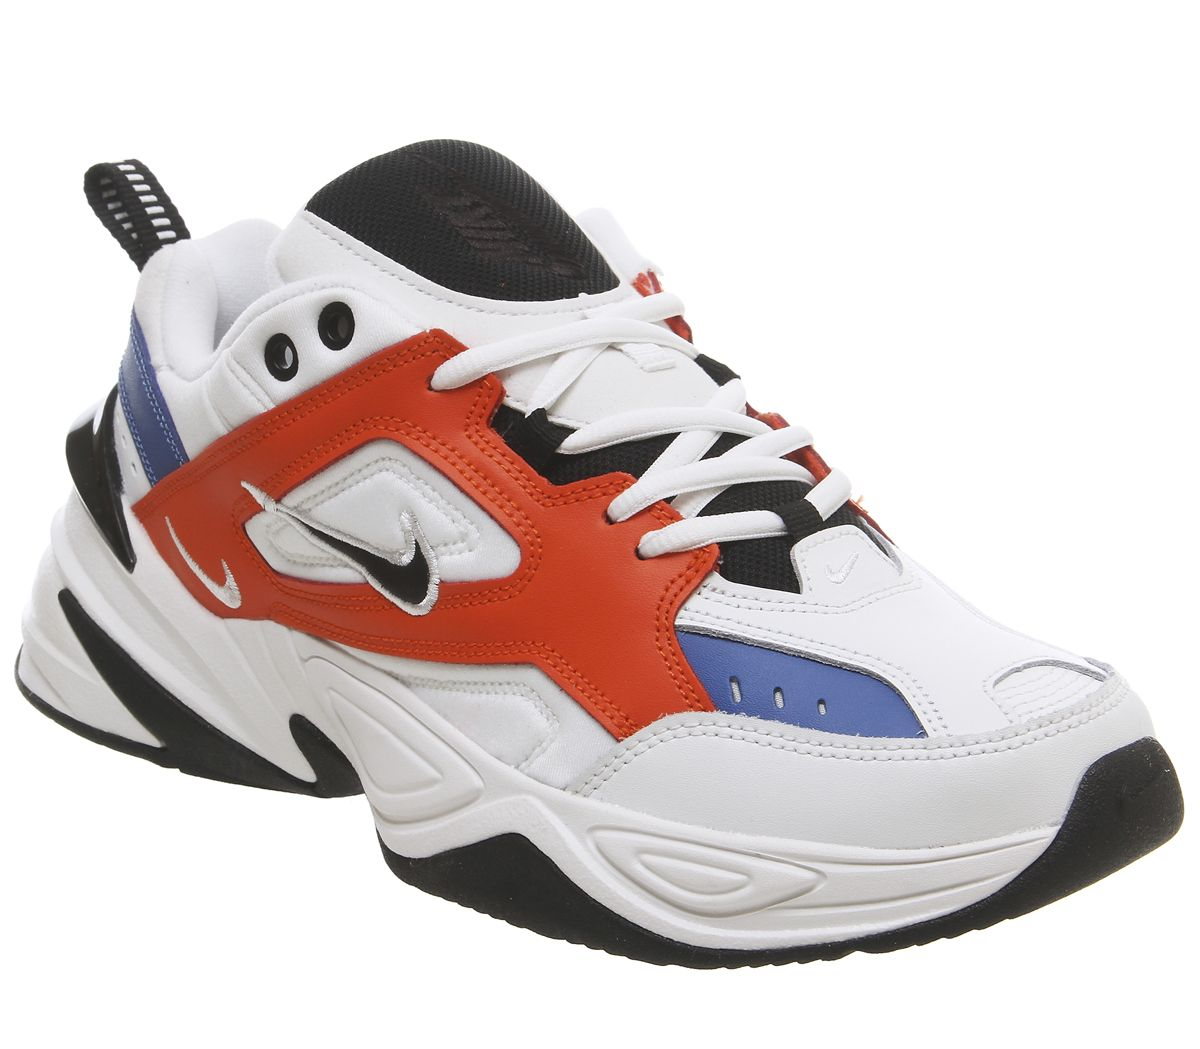 sports shoes 67c4b 88fcf Nike M2k Tekno Trainers Summit White Black Team Orange Mountain ...